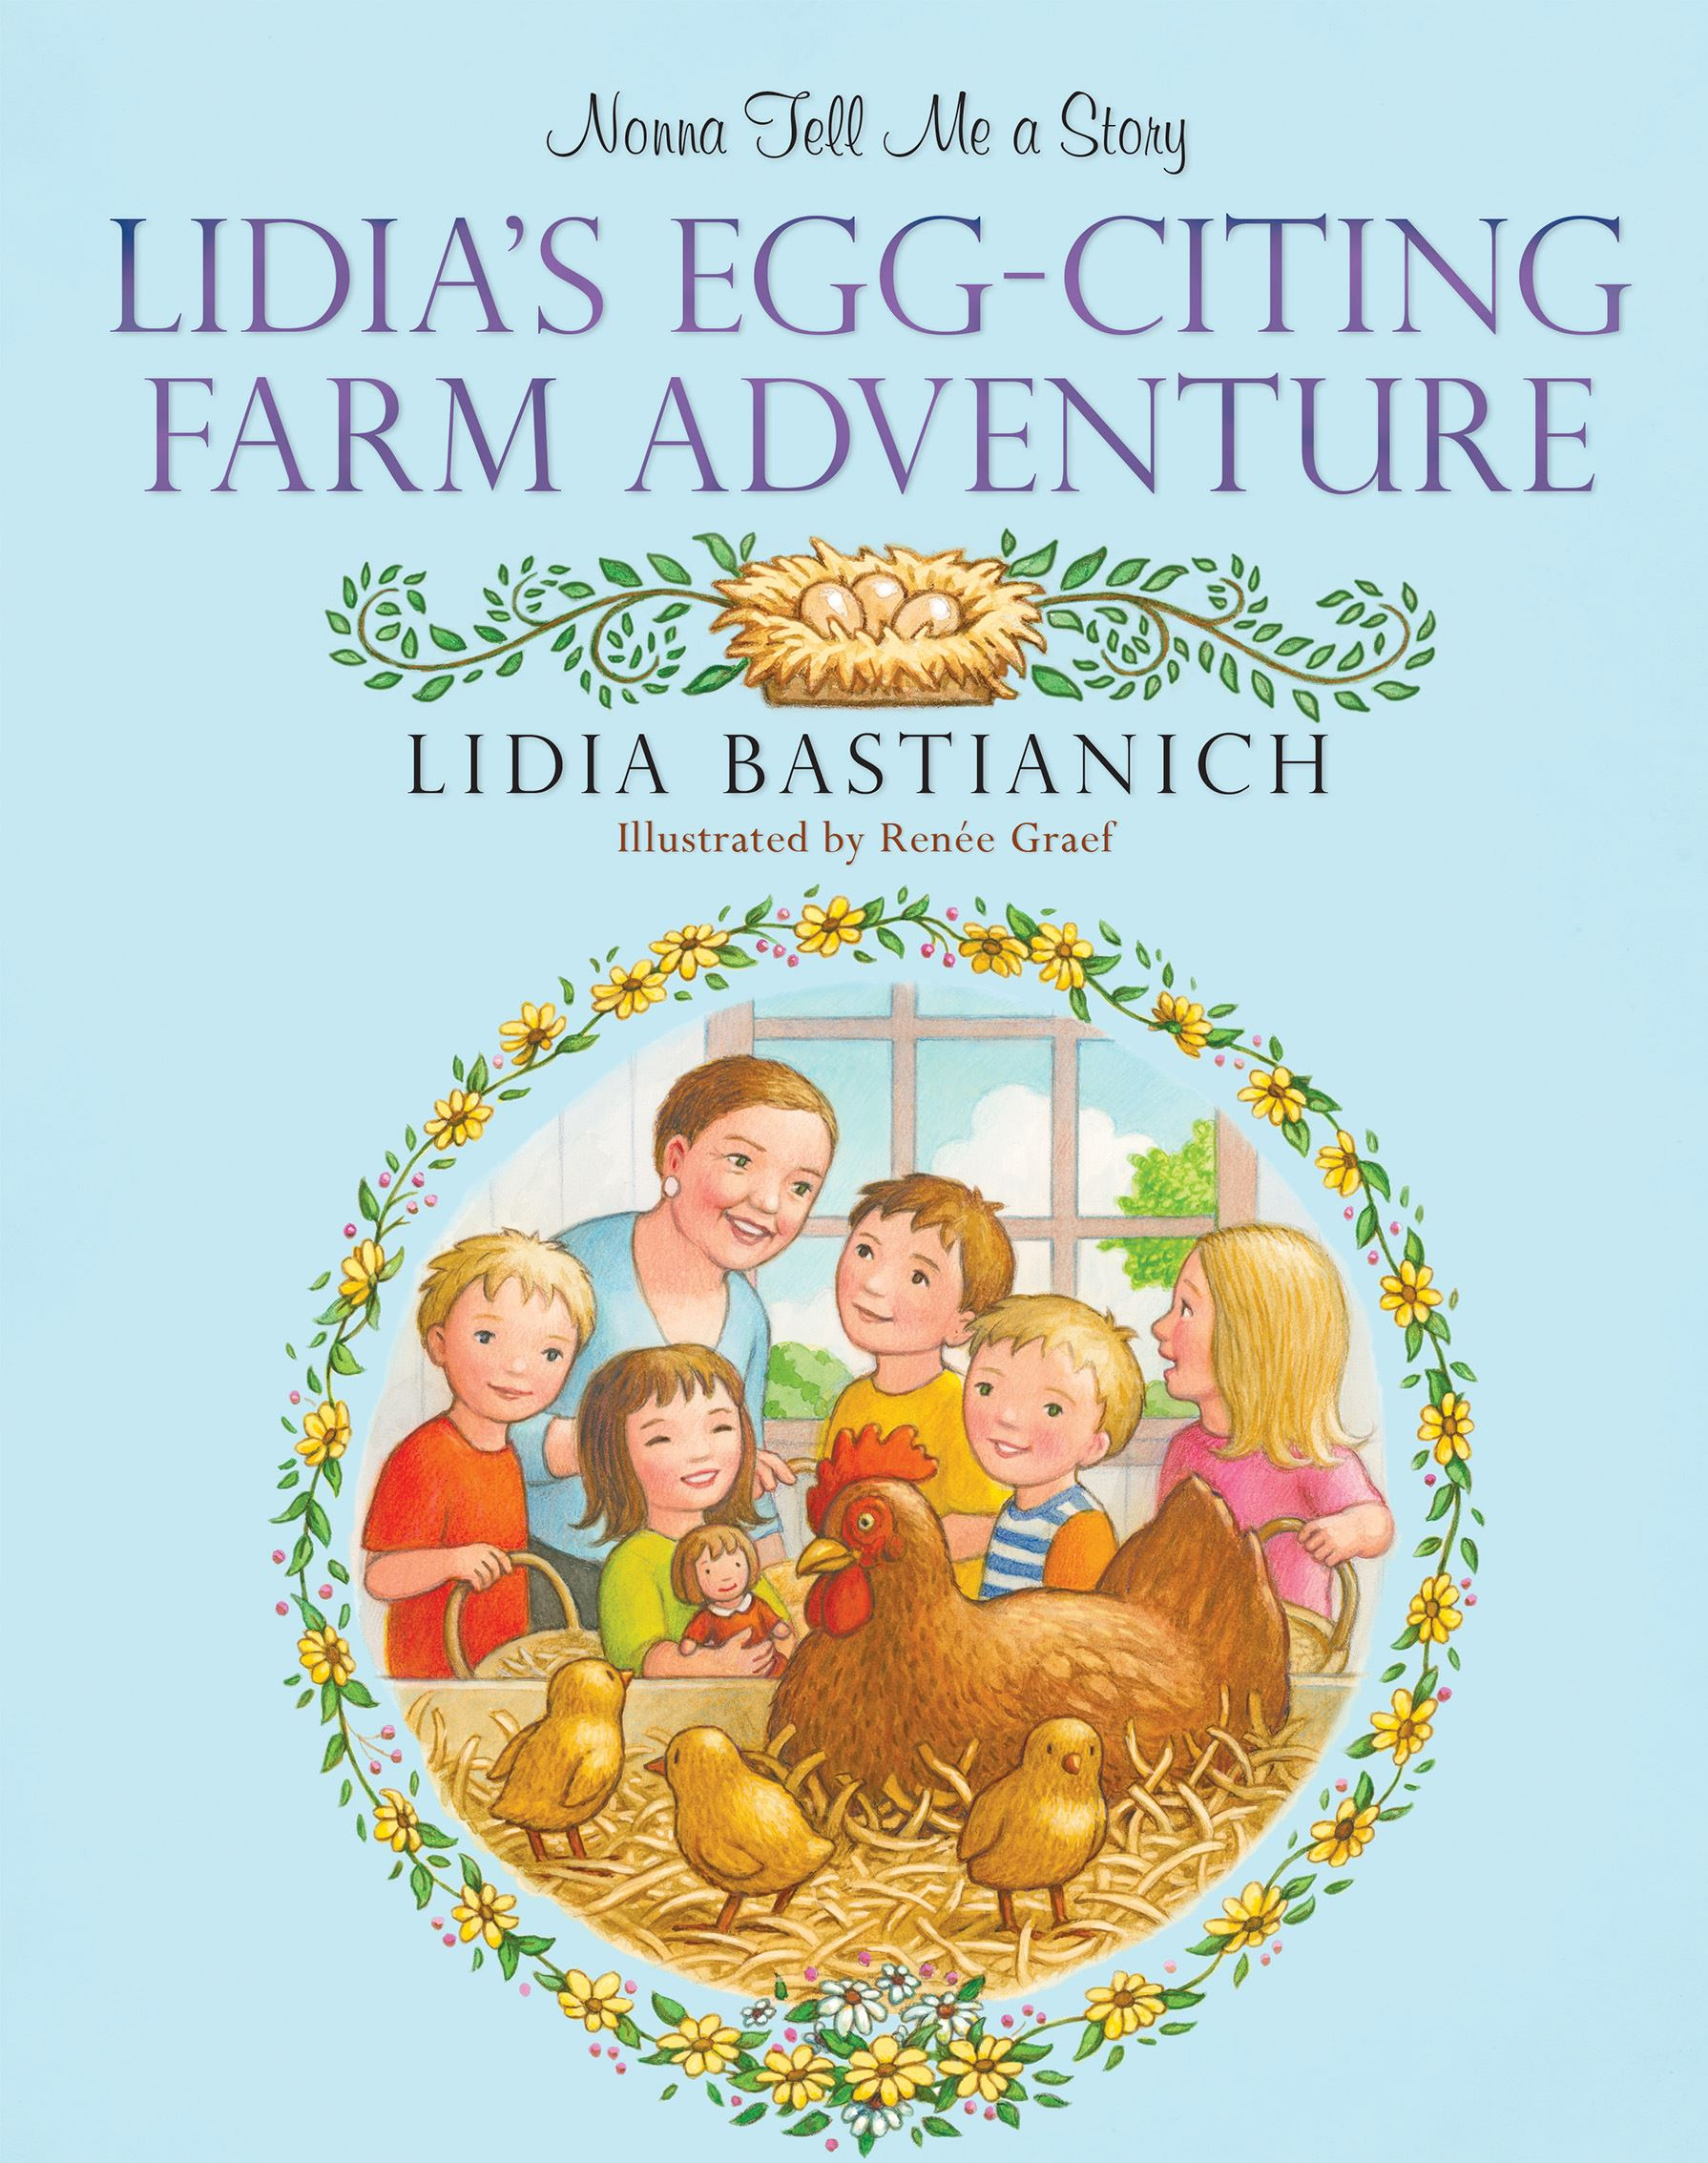 "eggciting ""Nonna Tell Me a Story: Lida's Egg-Cellent Farm Adventure"" by Lidia Bastianich."